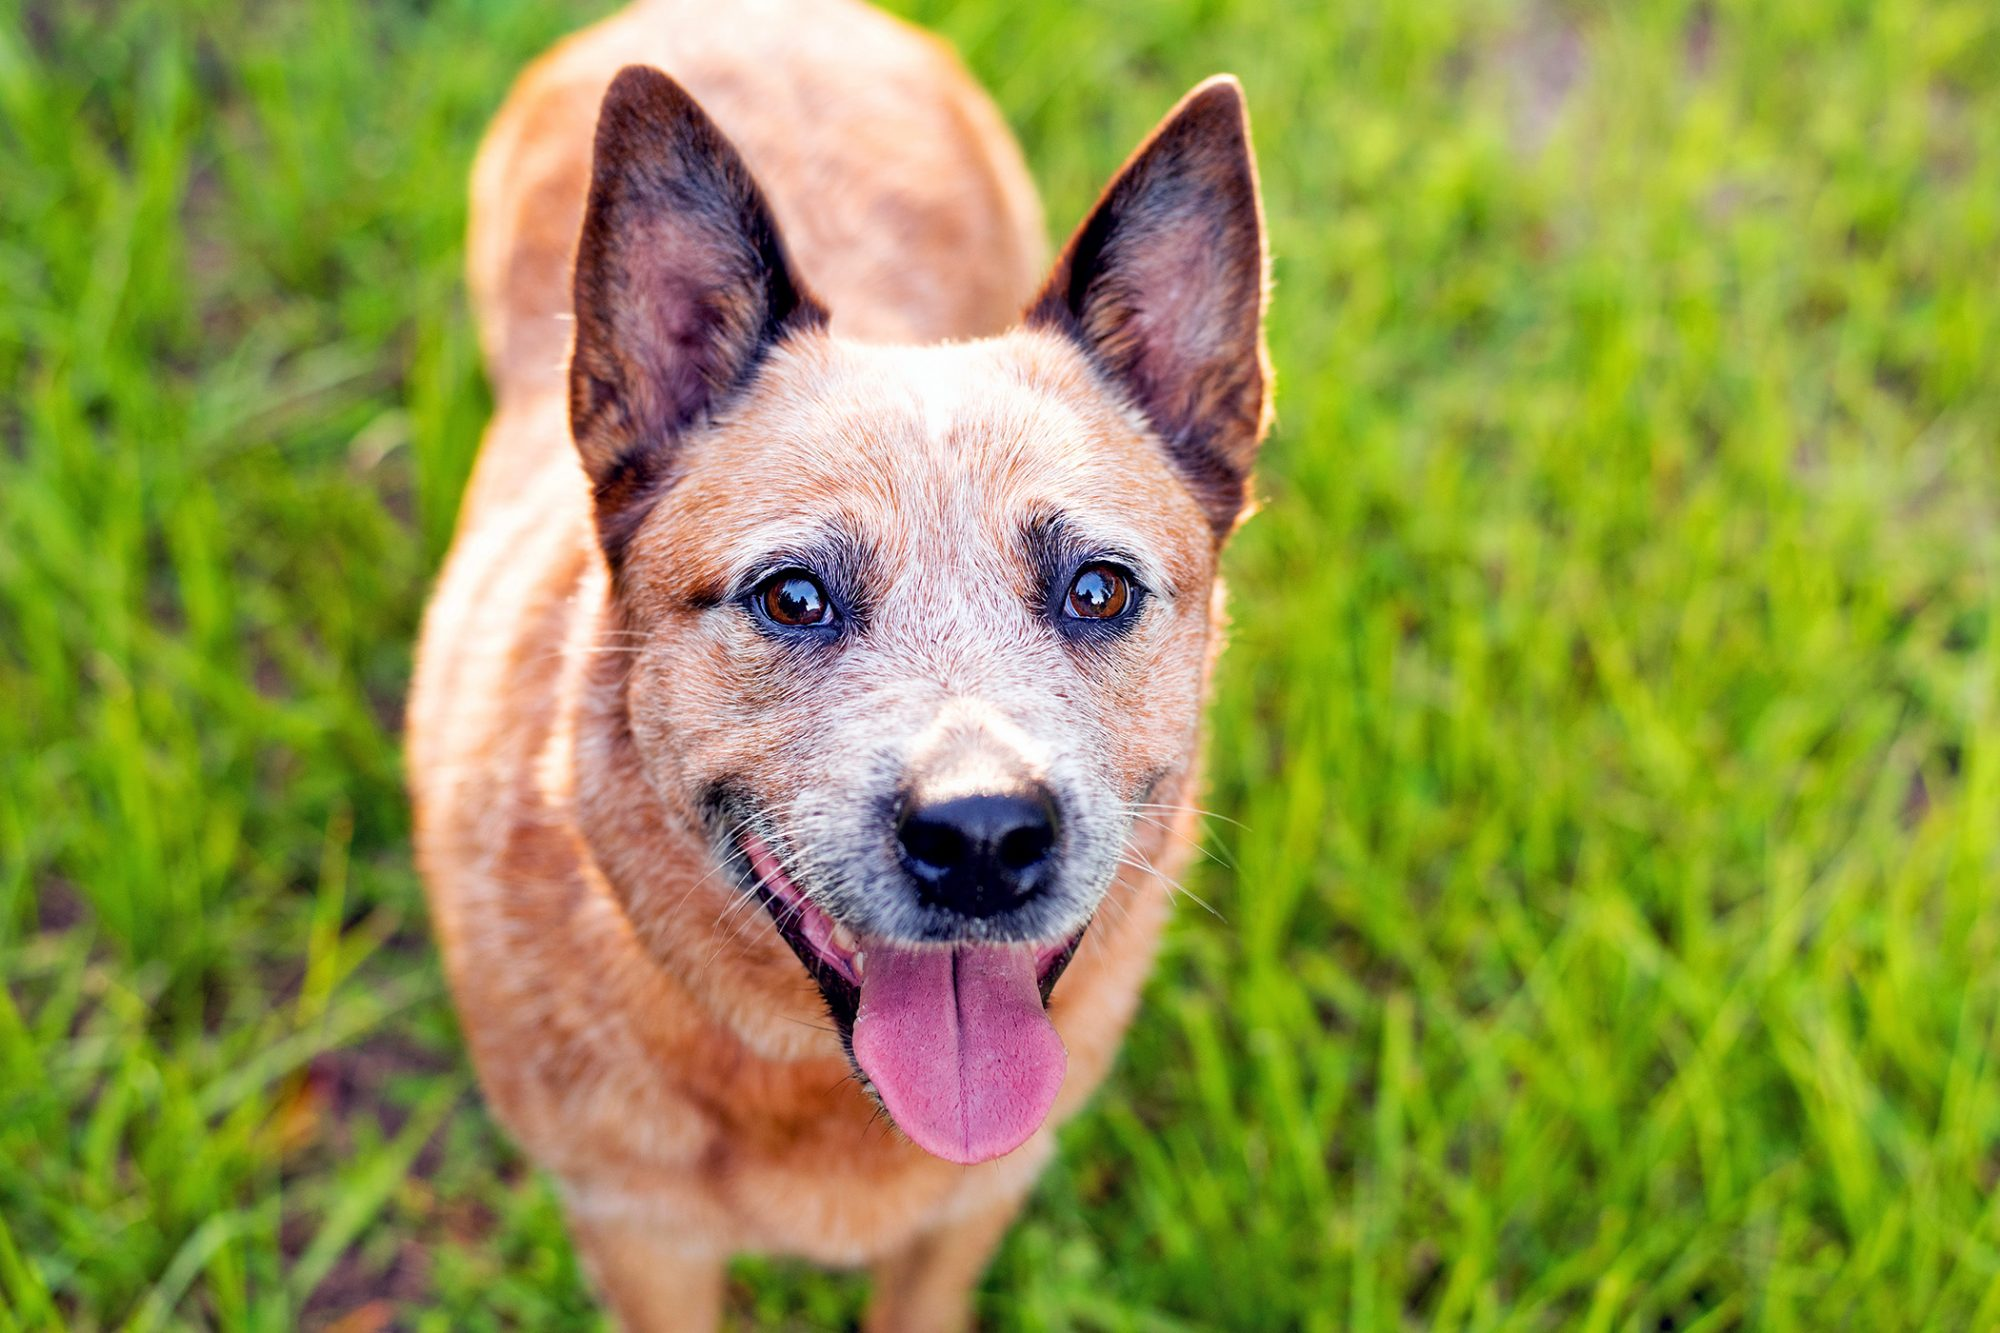 Australian Cattle Dog with grassy background